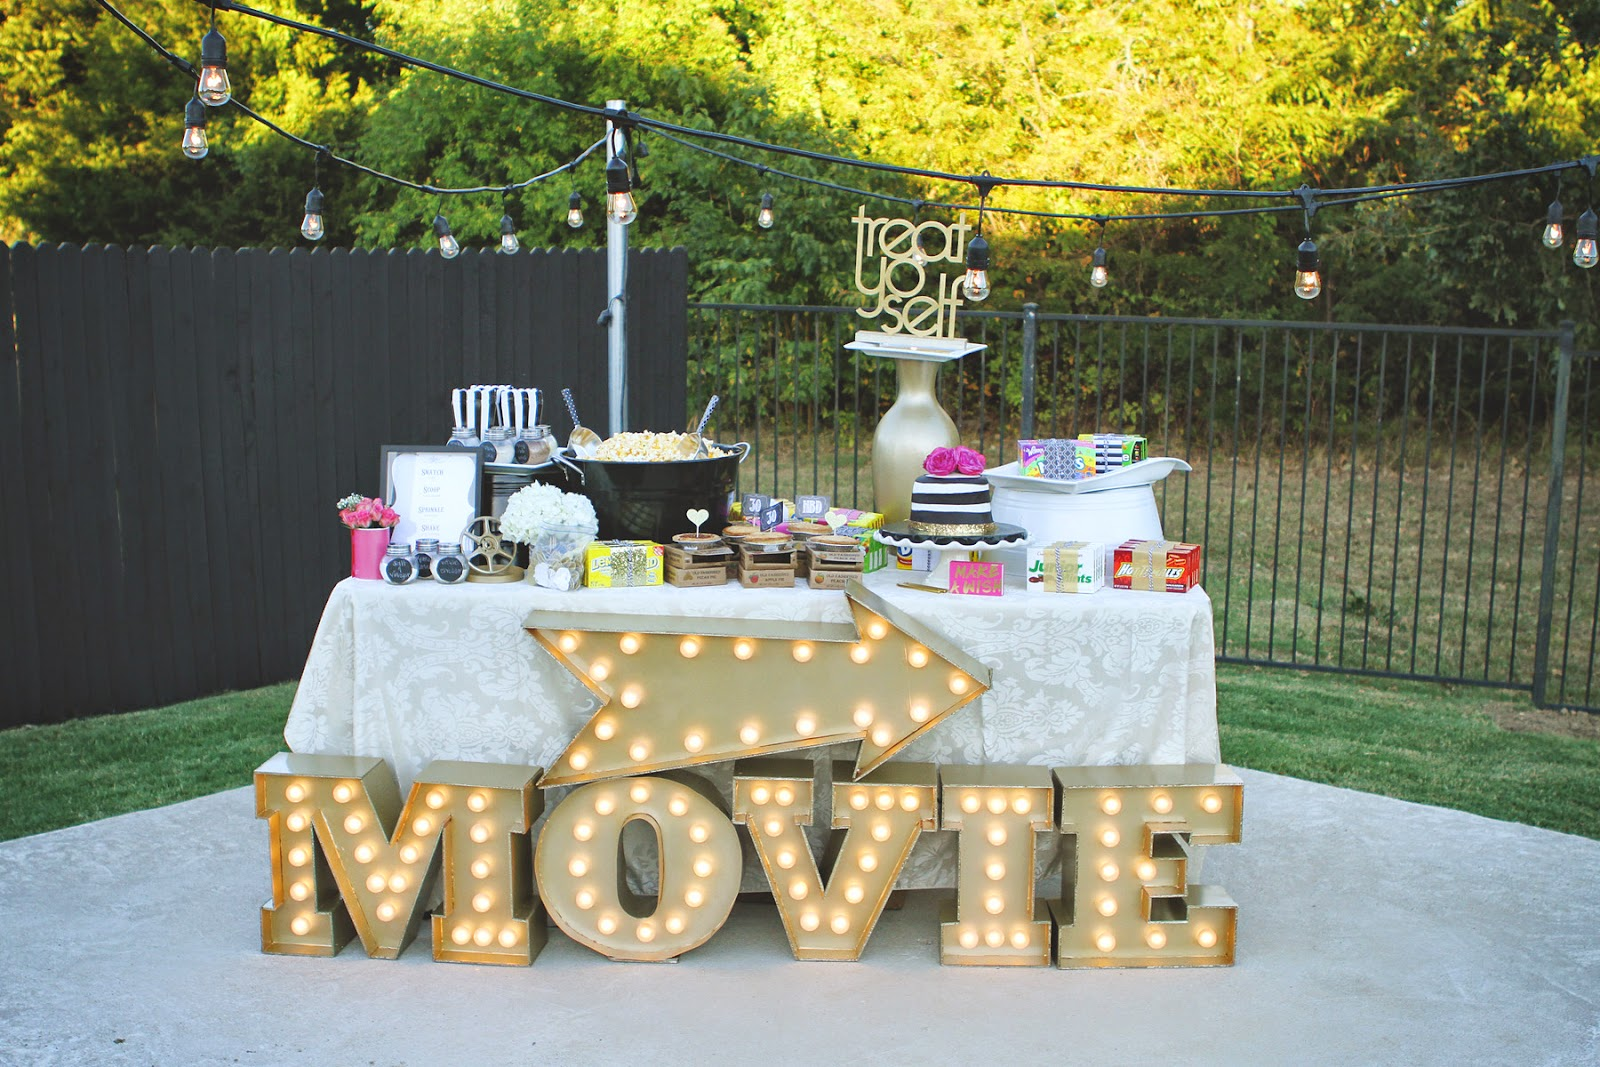 Pb j babes movie night under the stars 30th birthday celebration - Outdoor anniversary party ideas ...